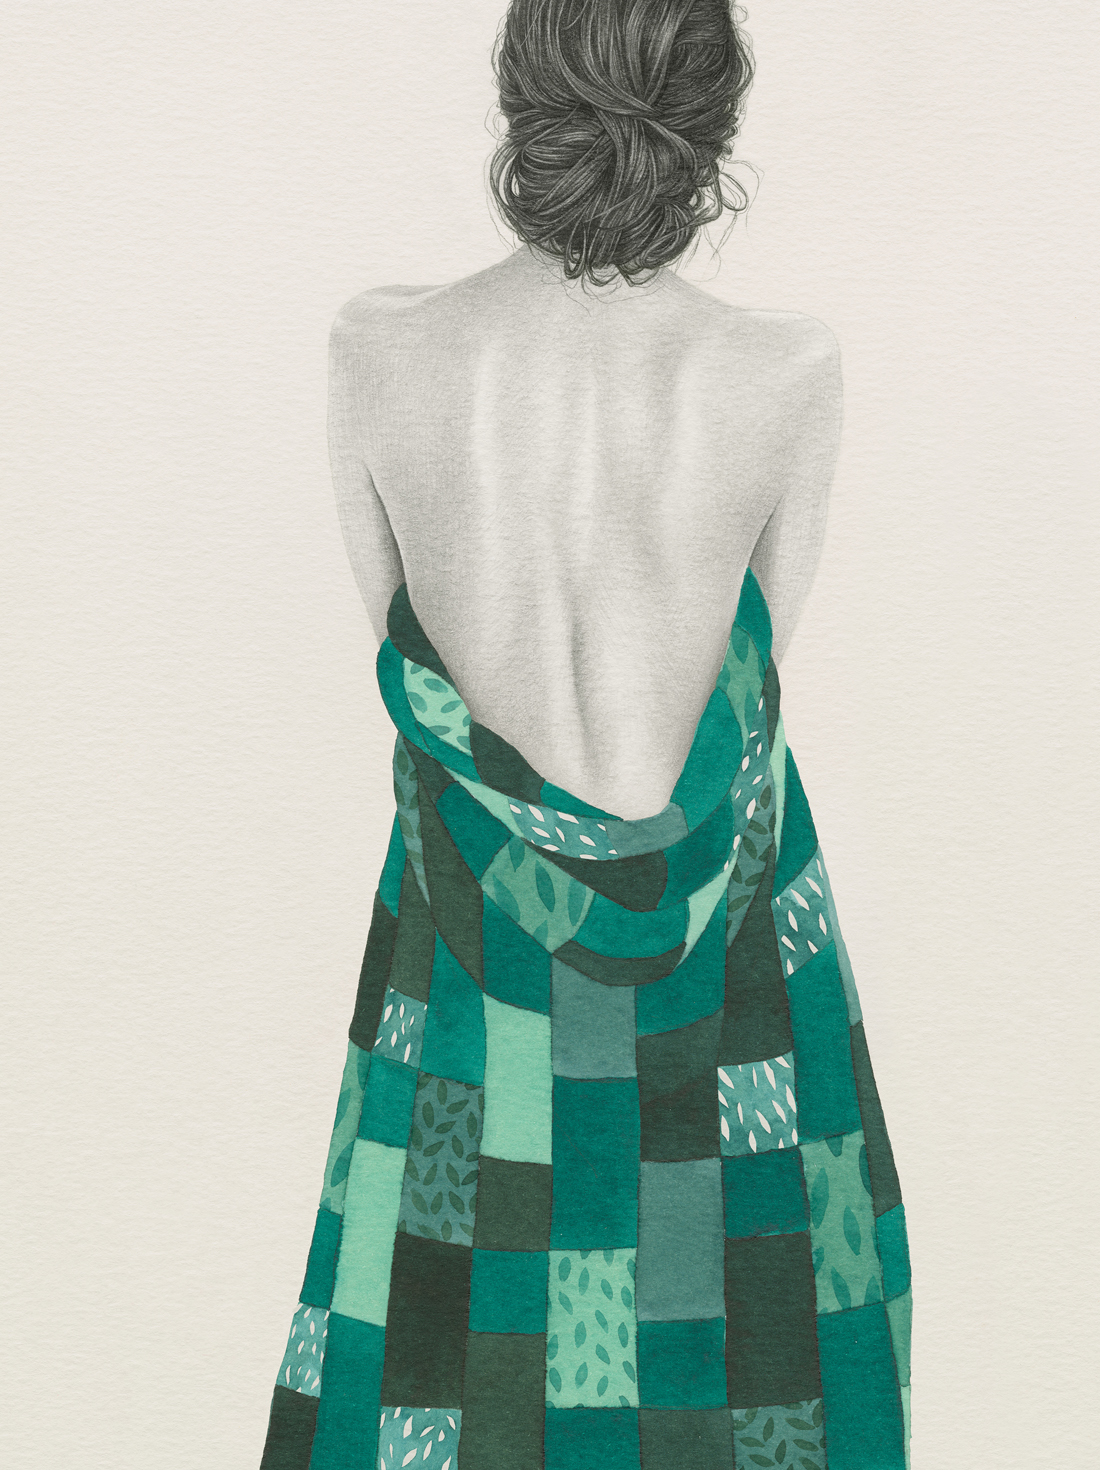 HELENA FRANK - Green Patchwork